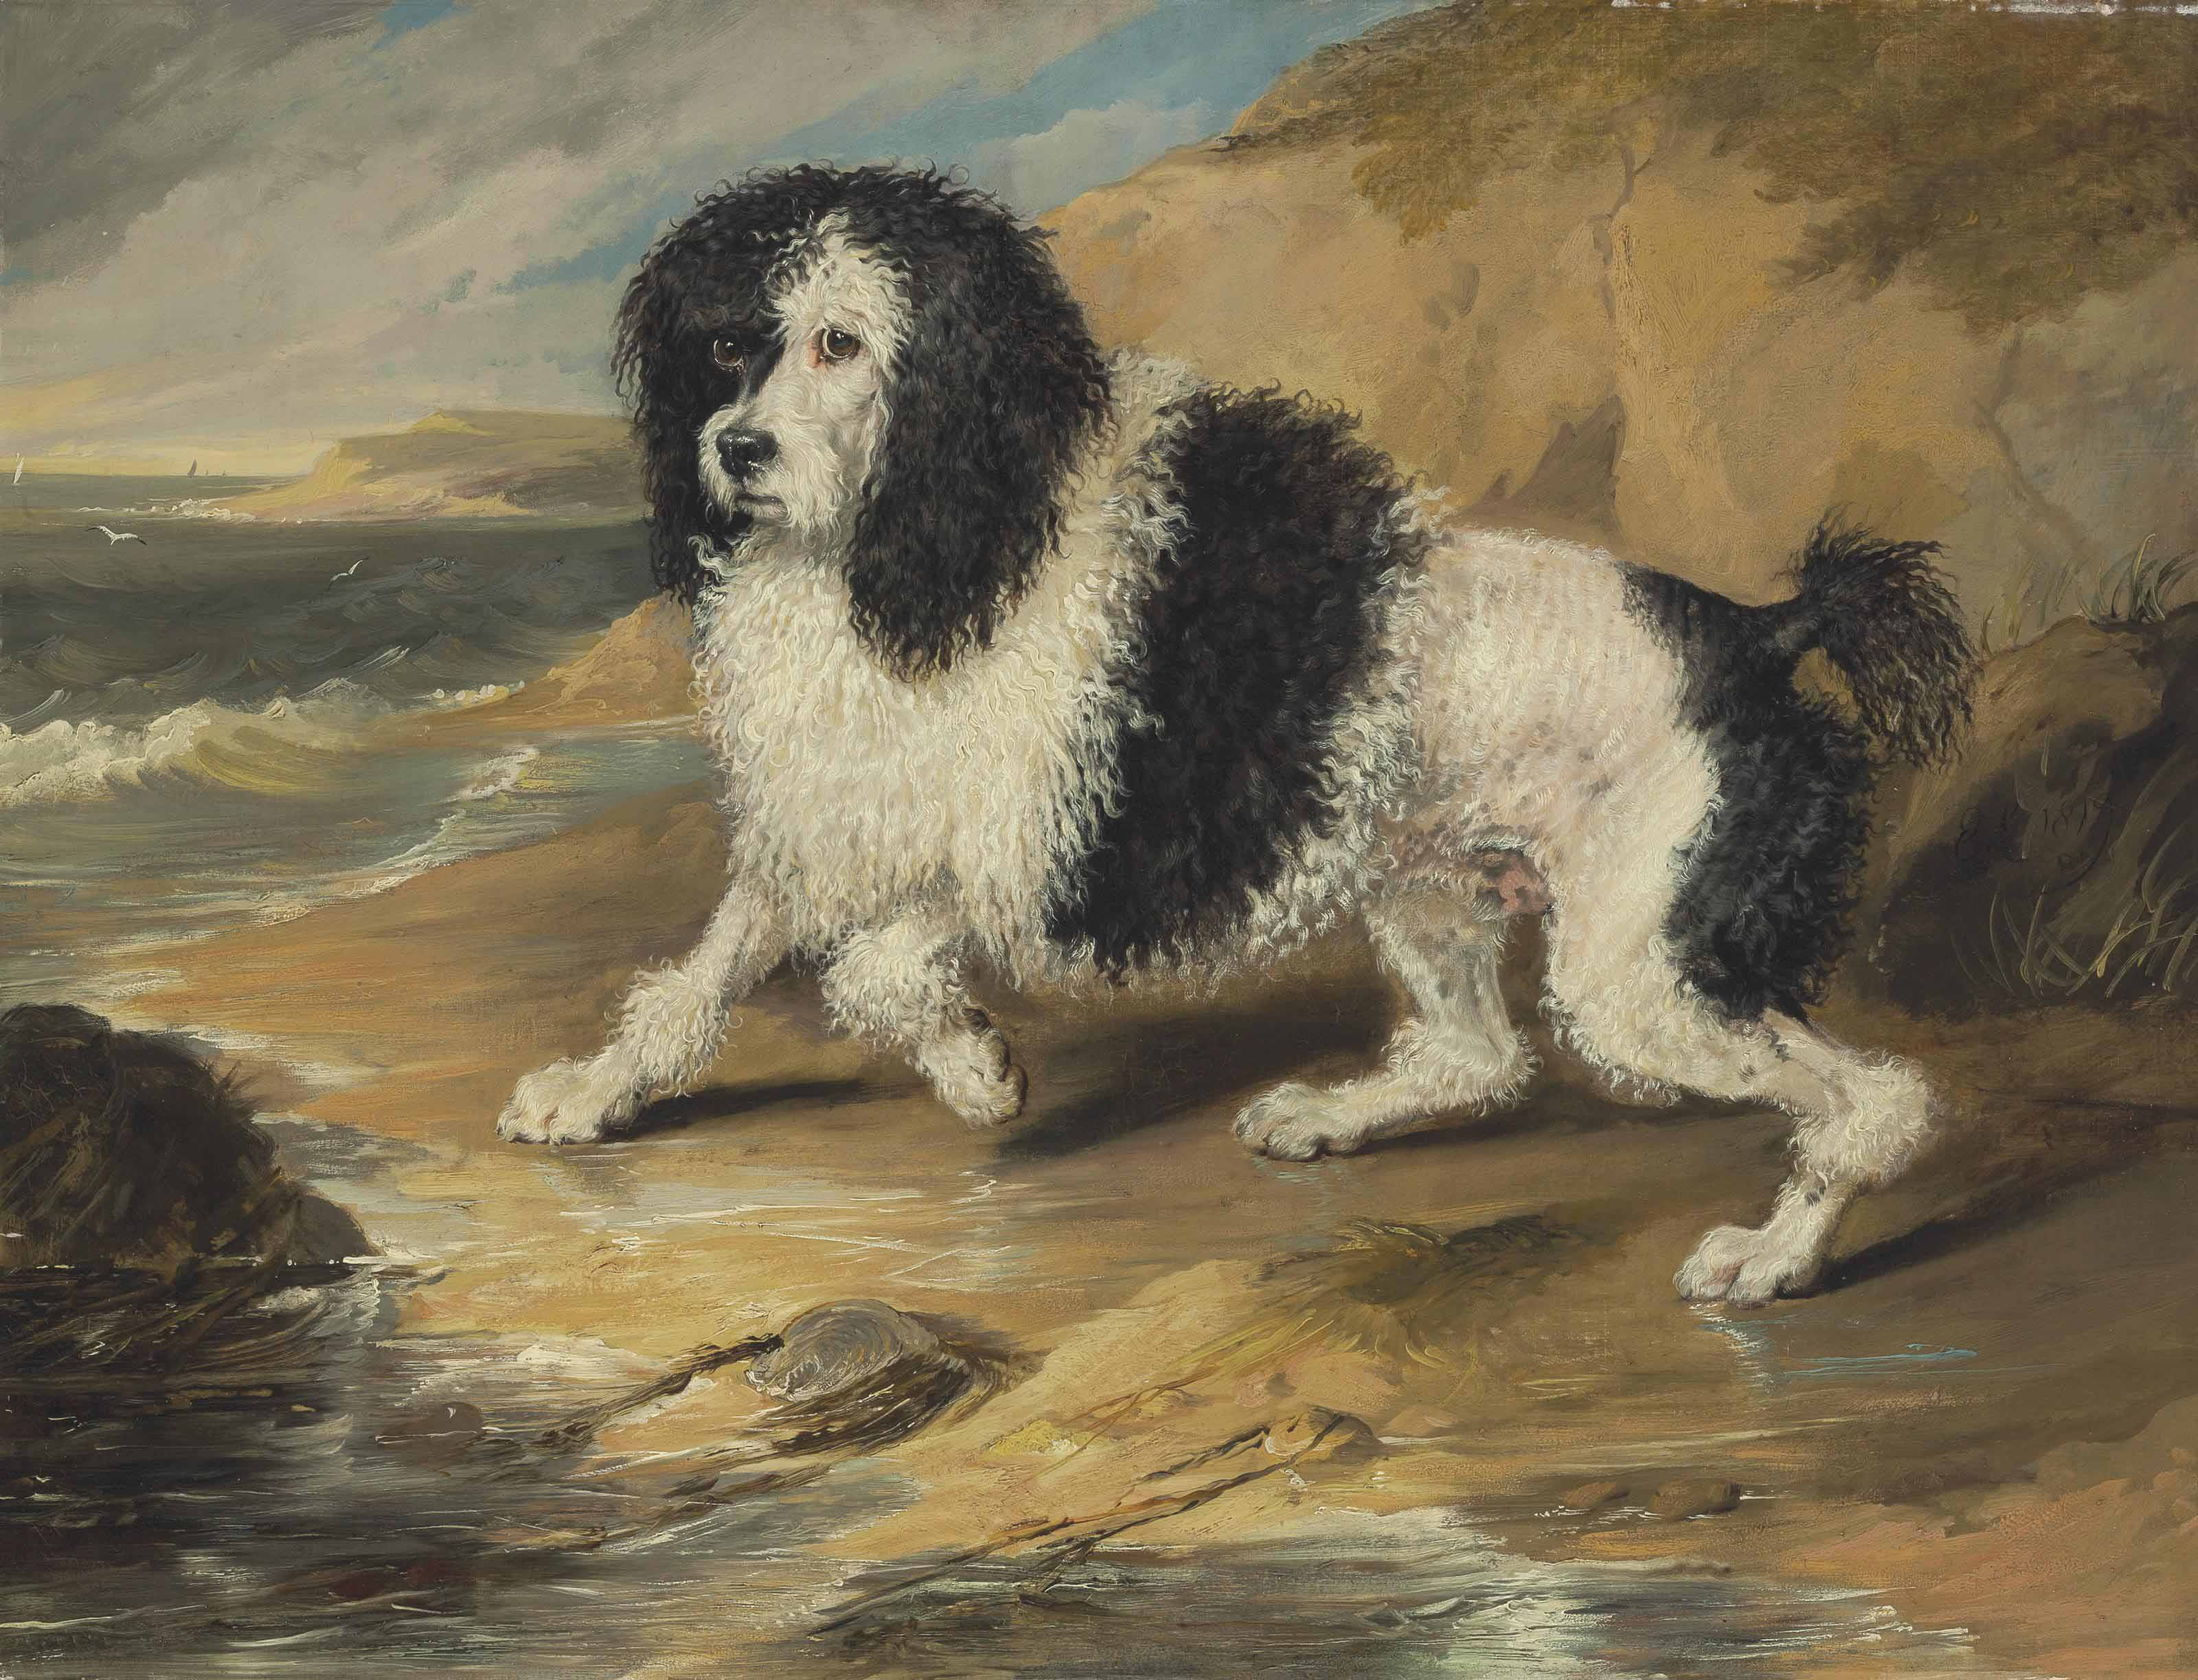 Tapageur, the Poodle belonging to the Honorable Frederick Byng